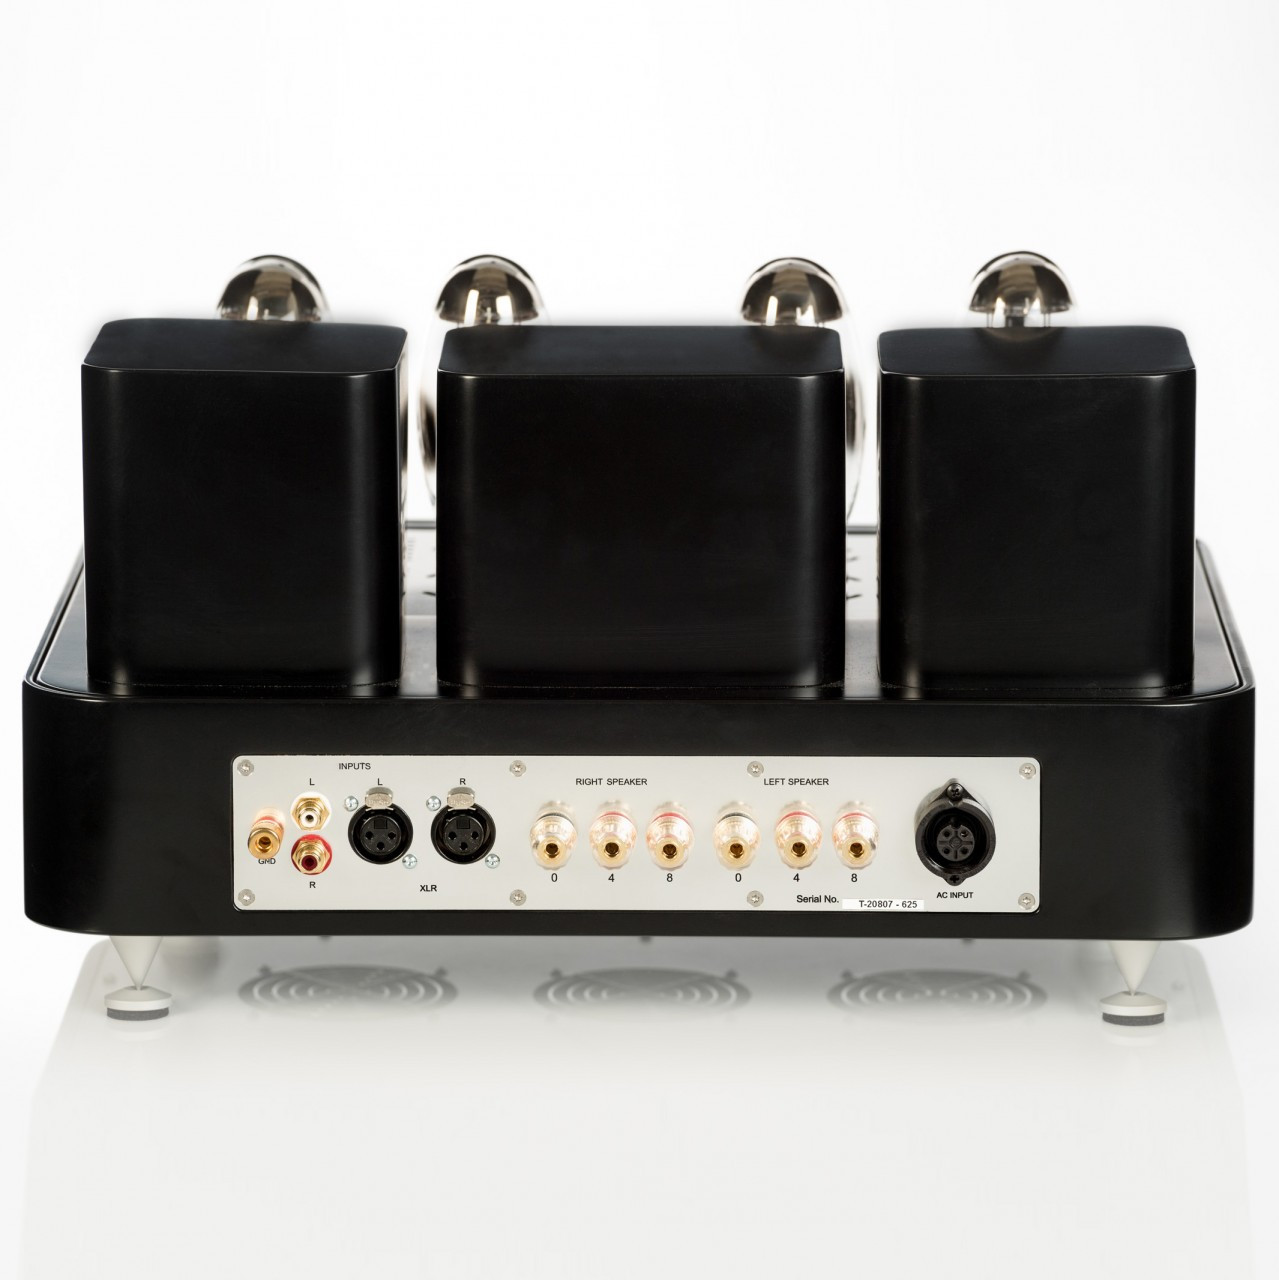 Trafomatic EOS+ power amplifier